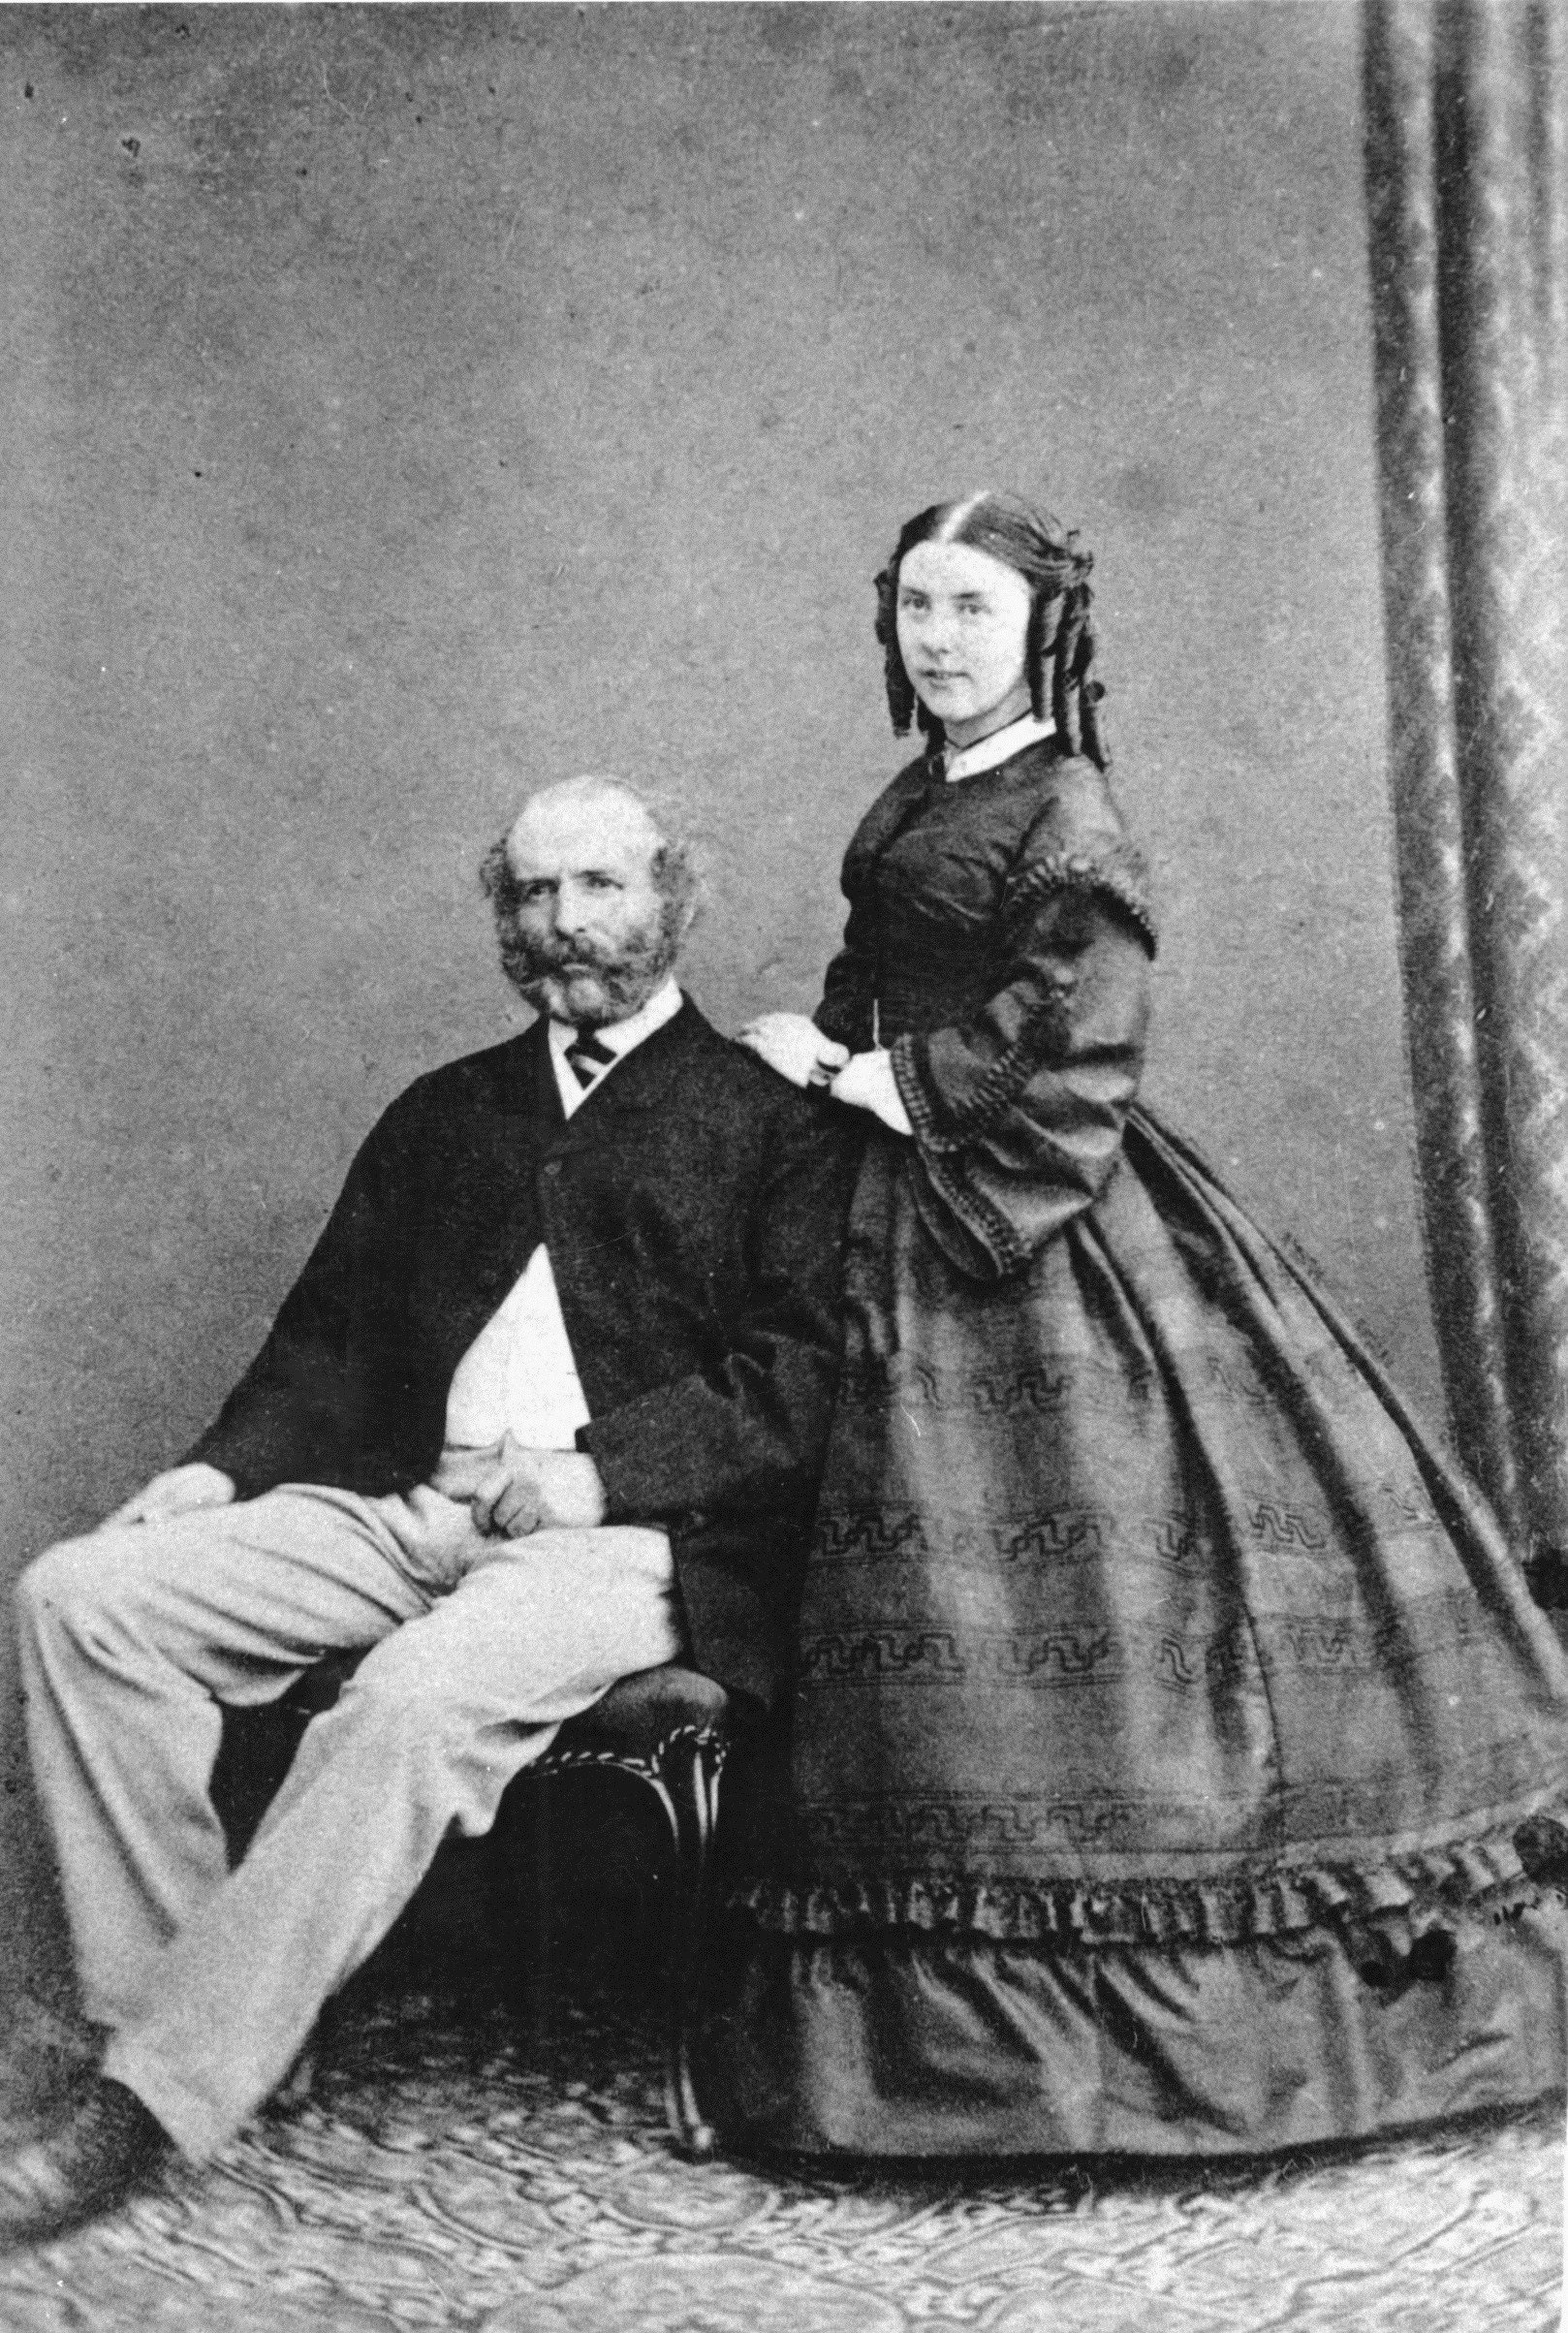 Orkney man, Arctic explorer John Rae with his wife, Kate Rae